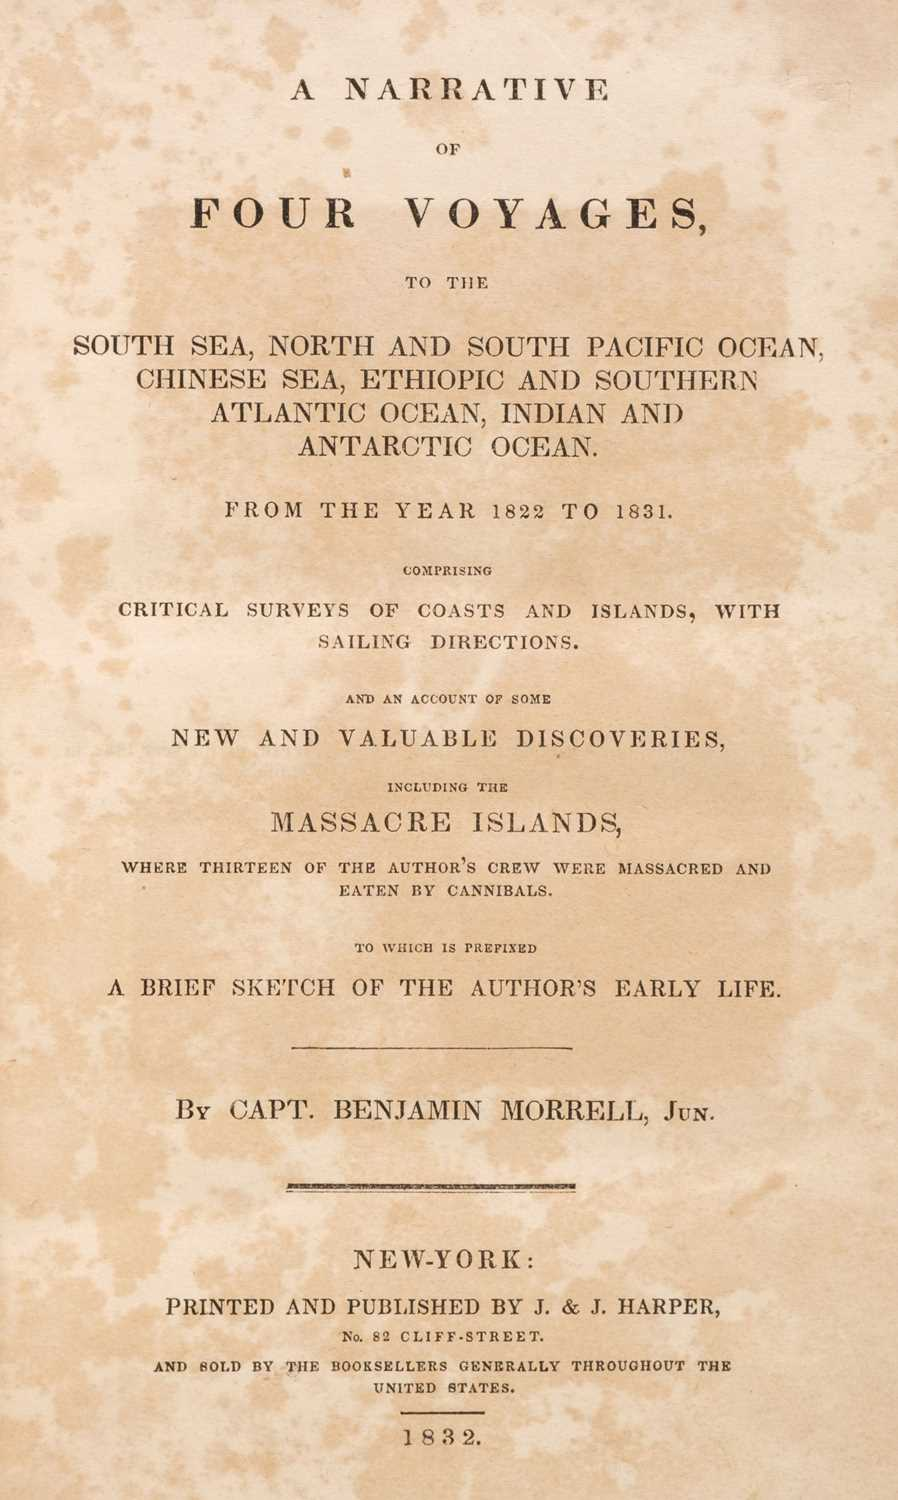 Lot 20 - Morrell (Benjamin). A Narrative of Four Voyages, 1st edition, 1832